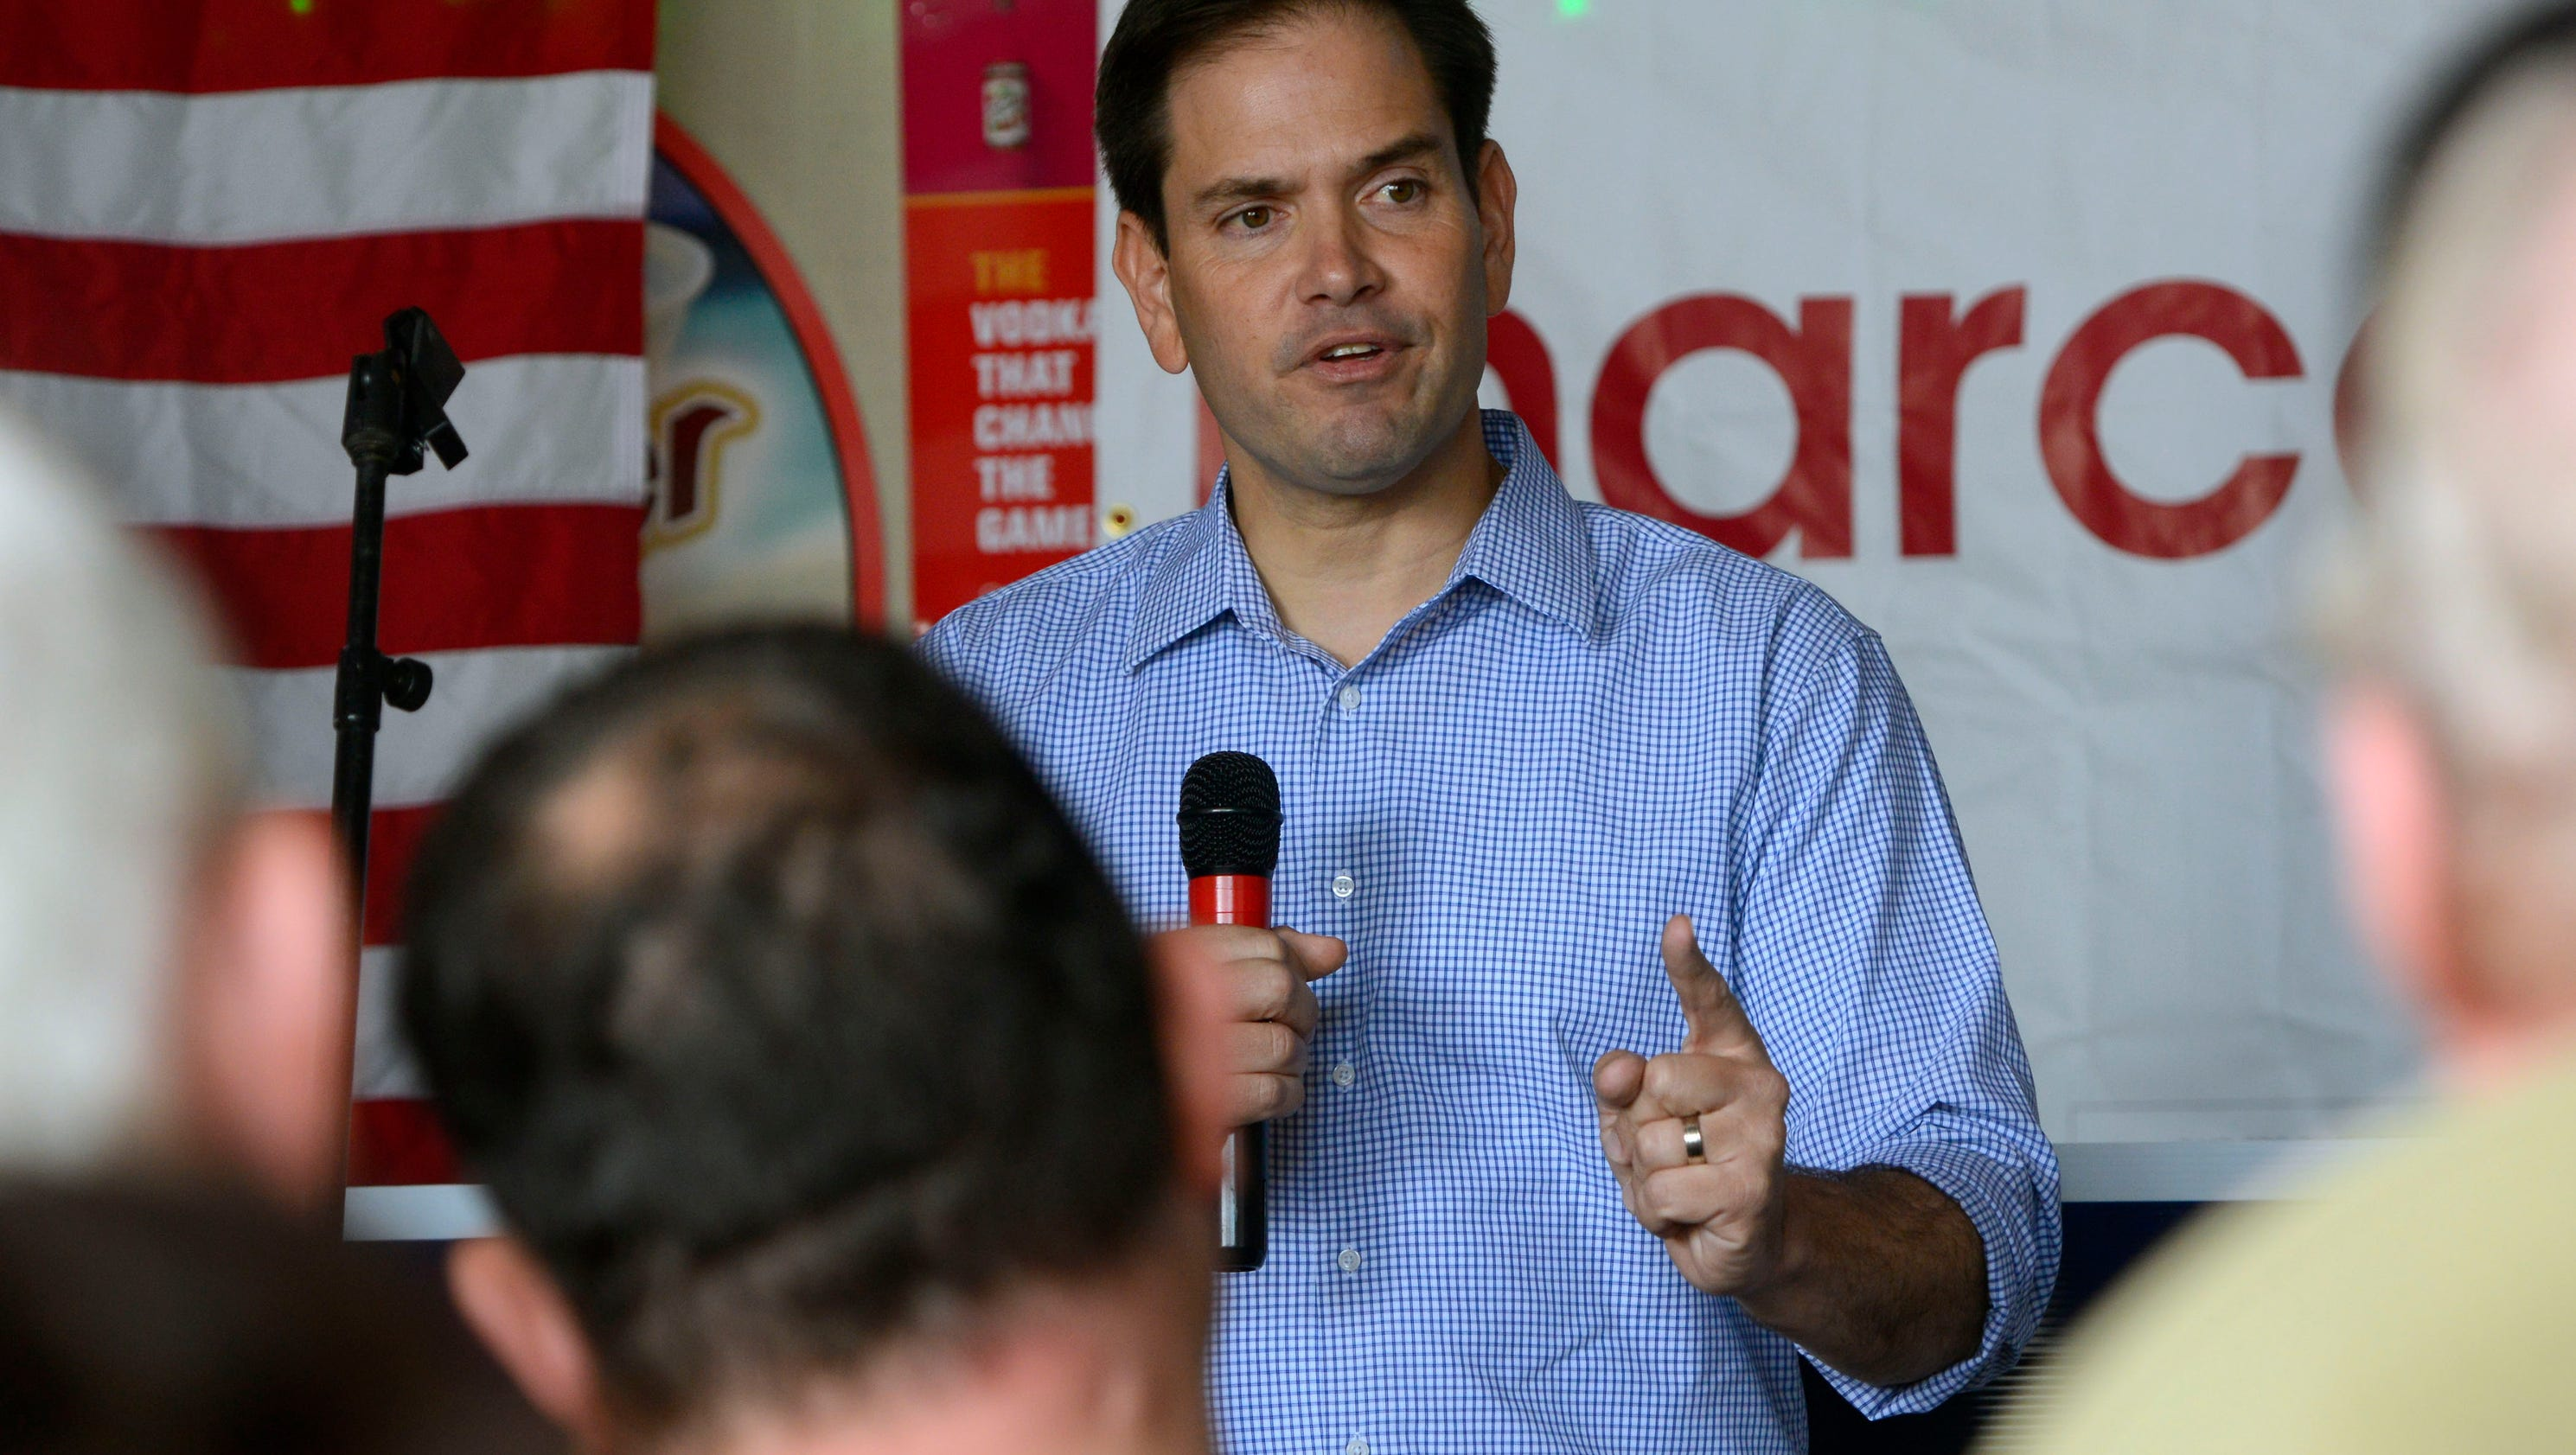 Rubio wins re-election over Murphy